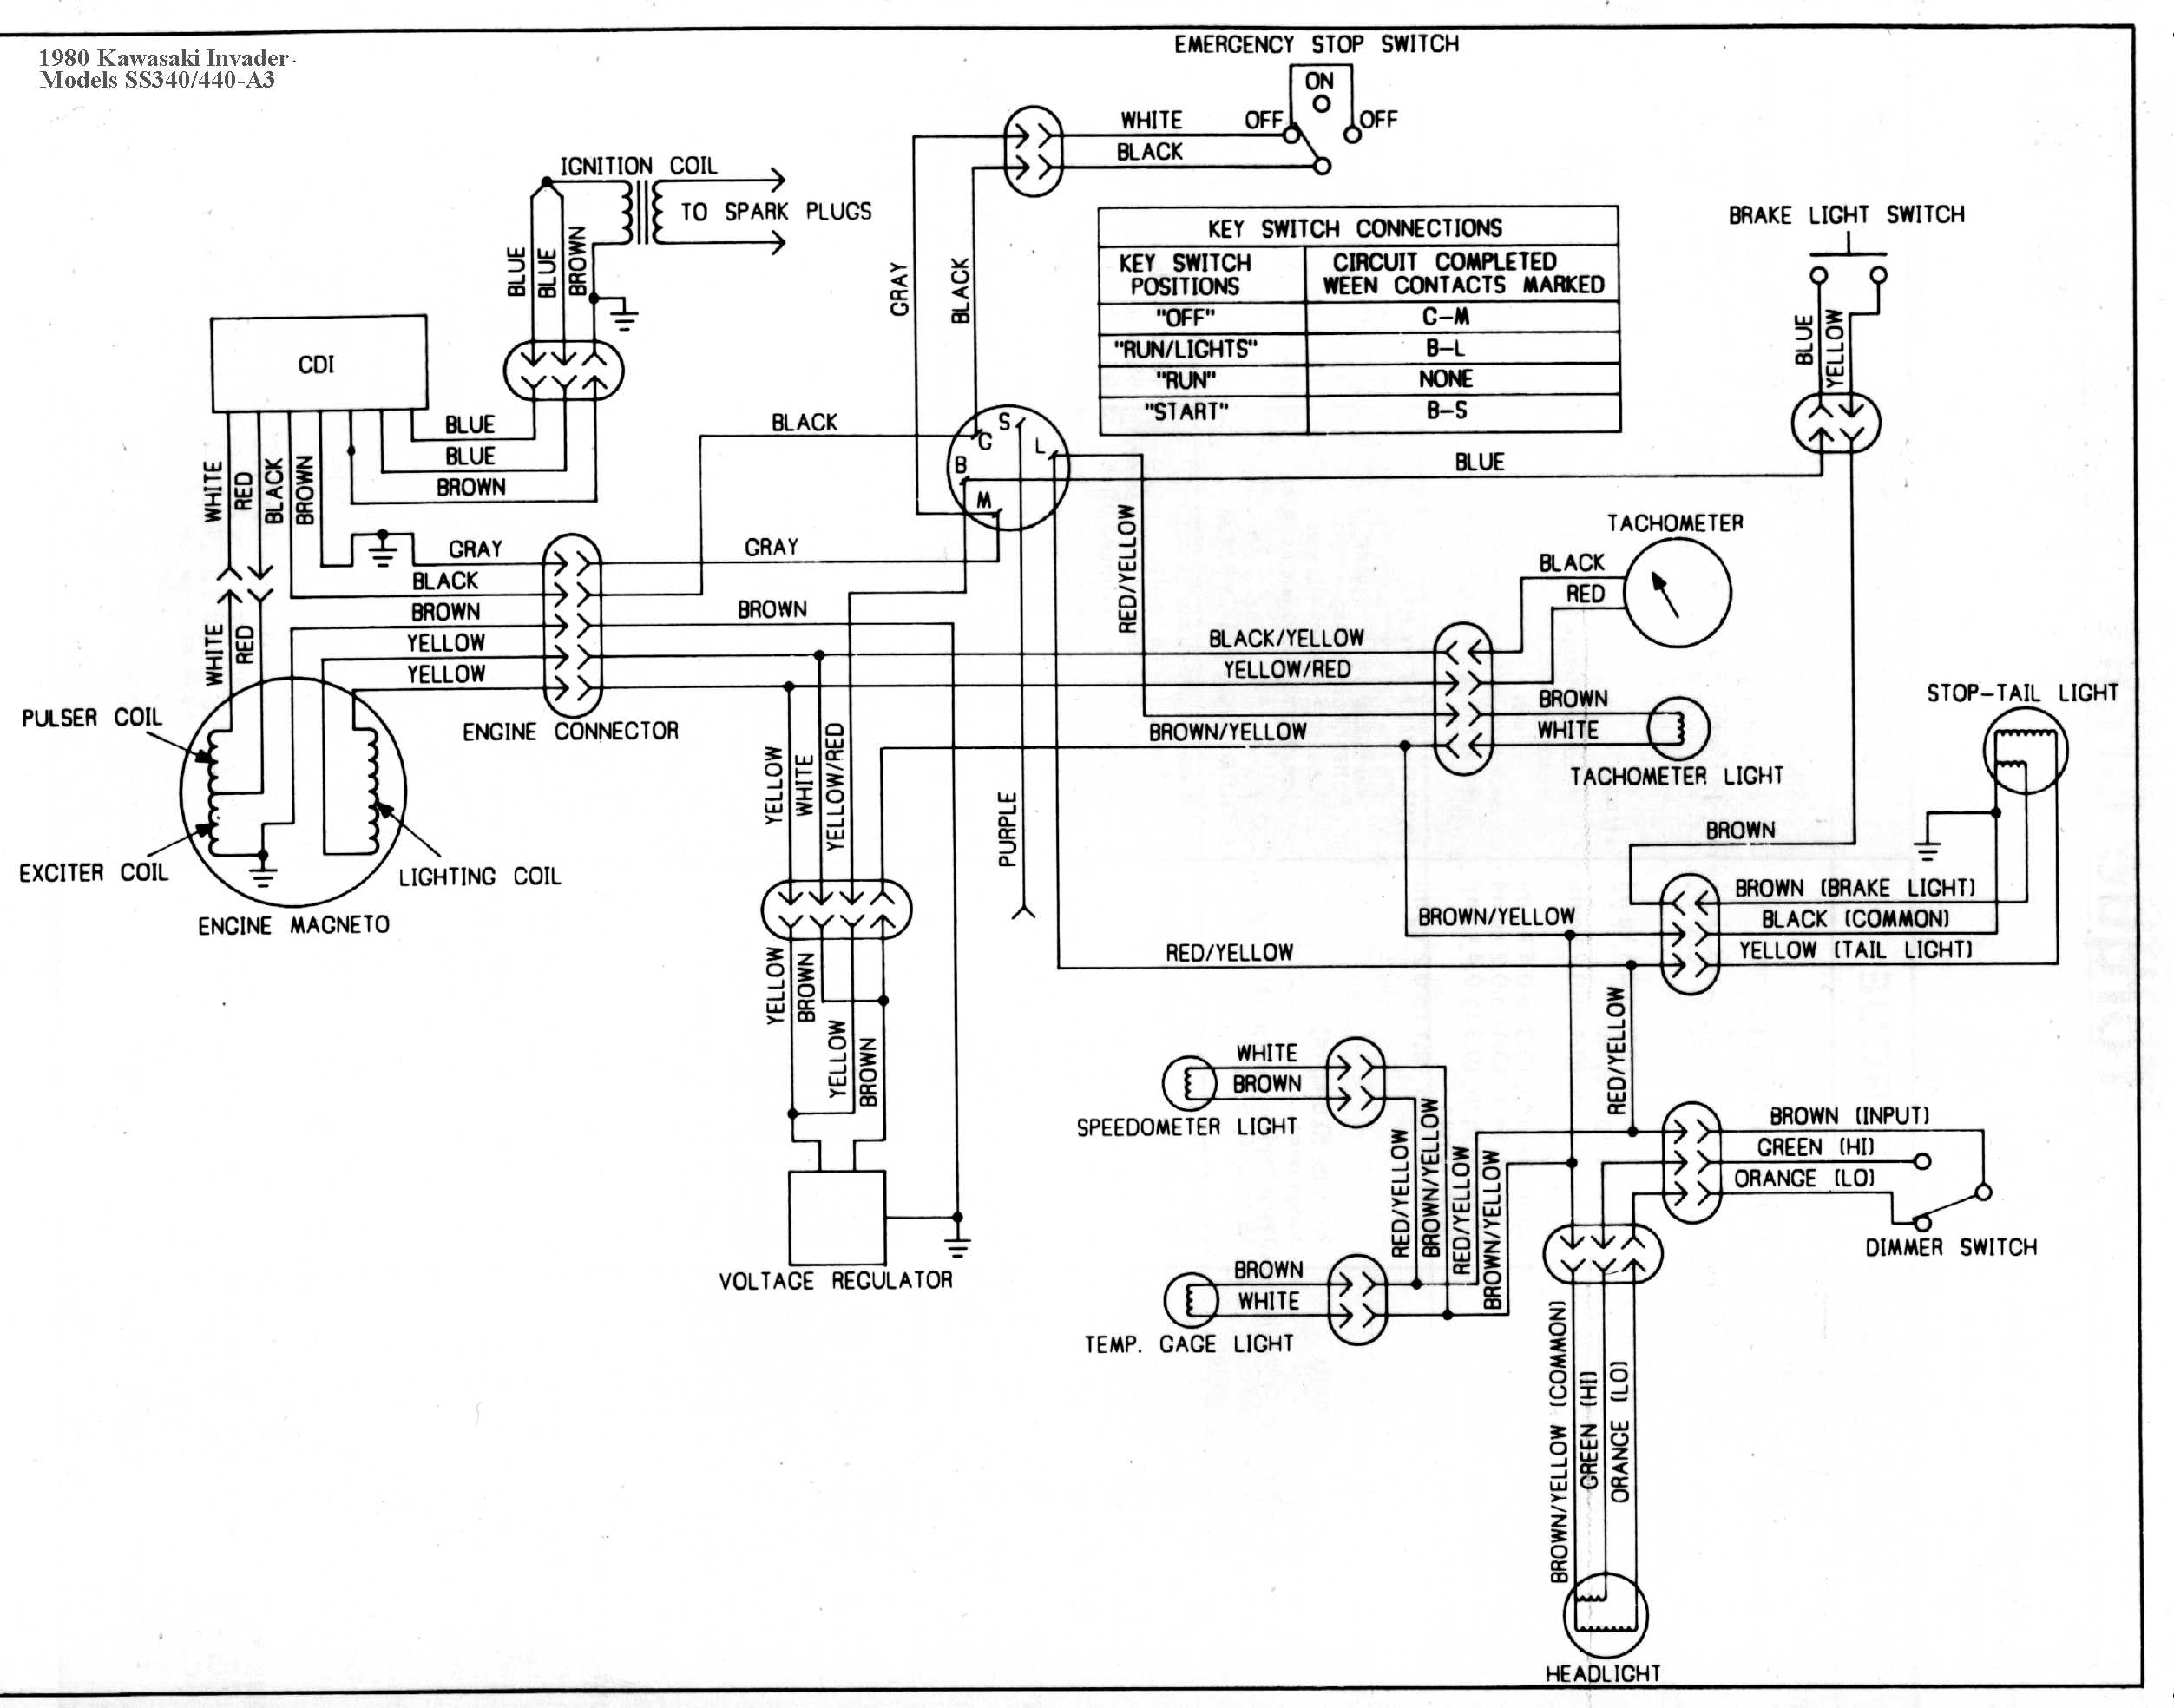 hight resolution of arctic cat cougar 440 snowmobile wiring diagram electrical wiring 1996 arctic cat el tigre arctic cat 440 snowmobile wiring diagrams